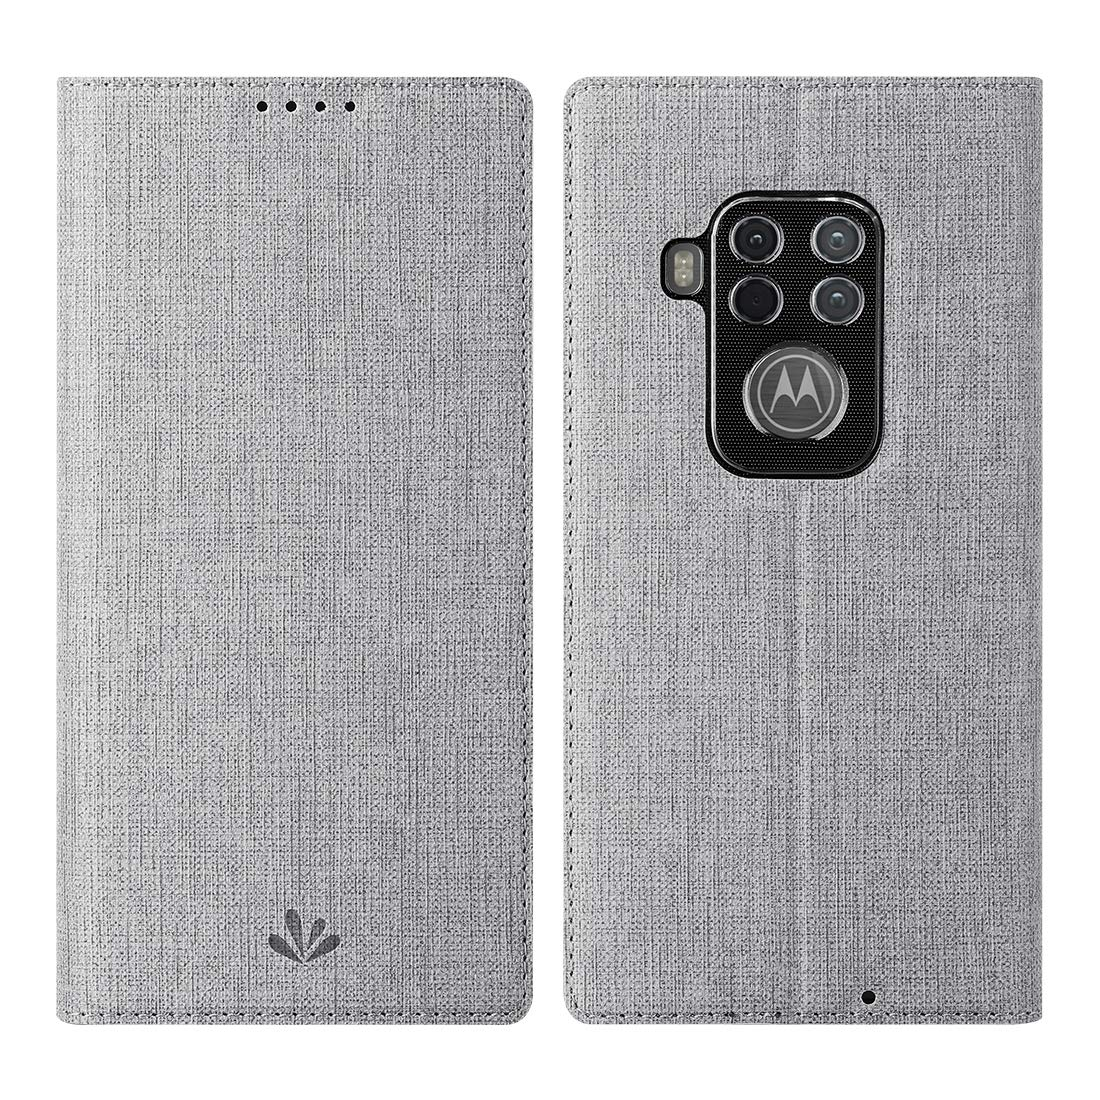 Funda Flip Cover Para Motorola One Zoom, Gris